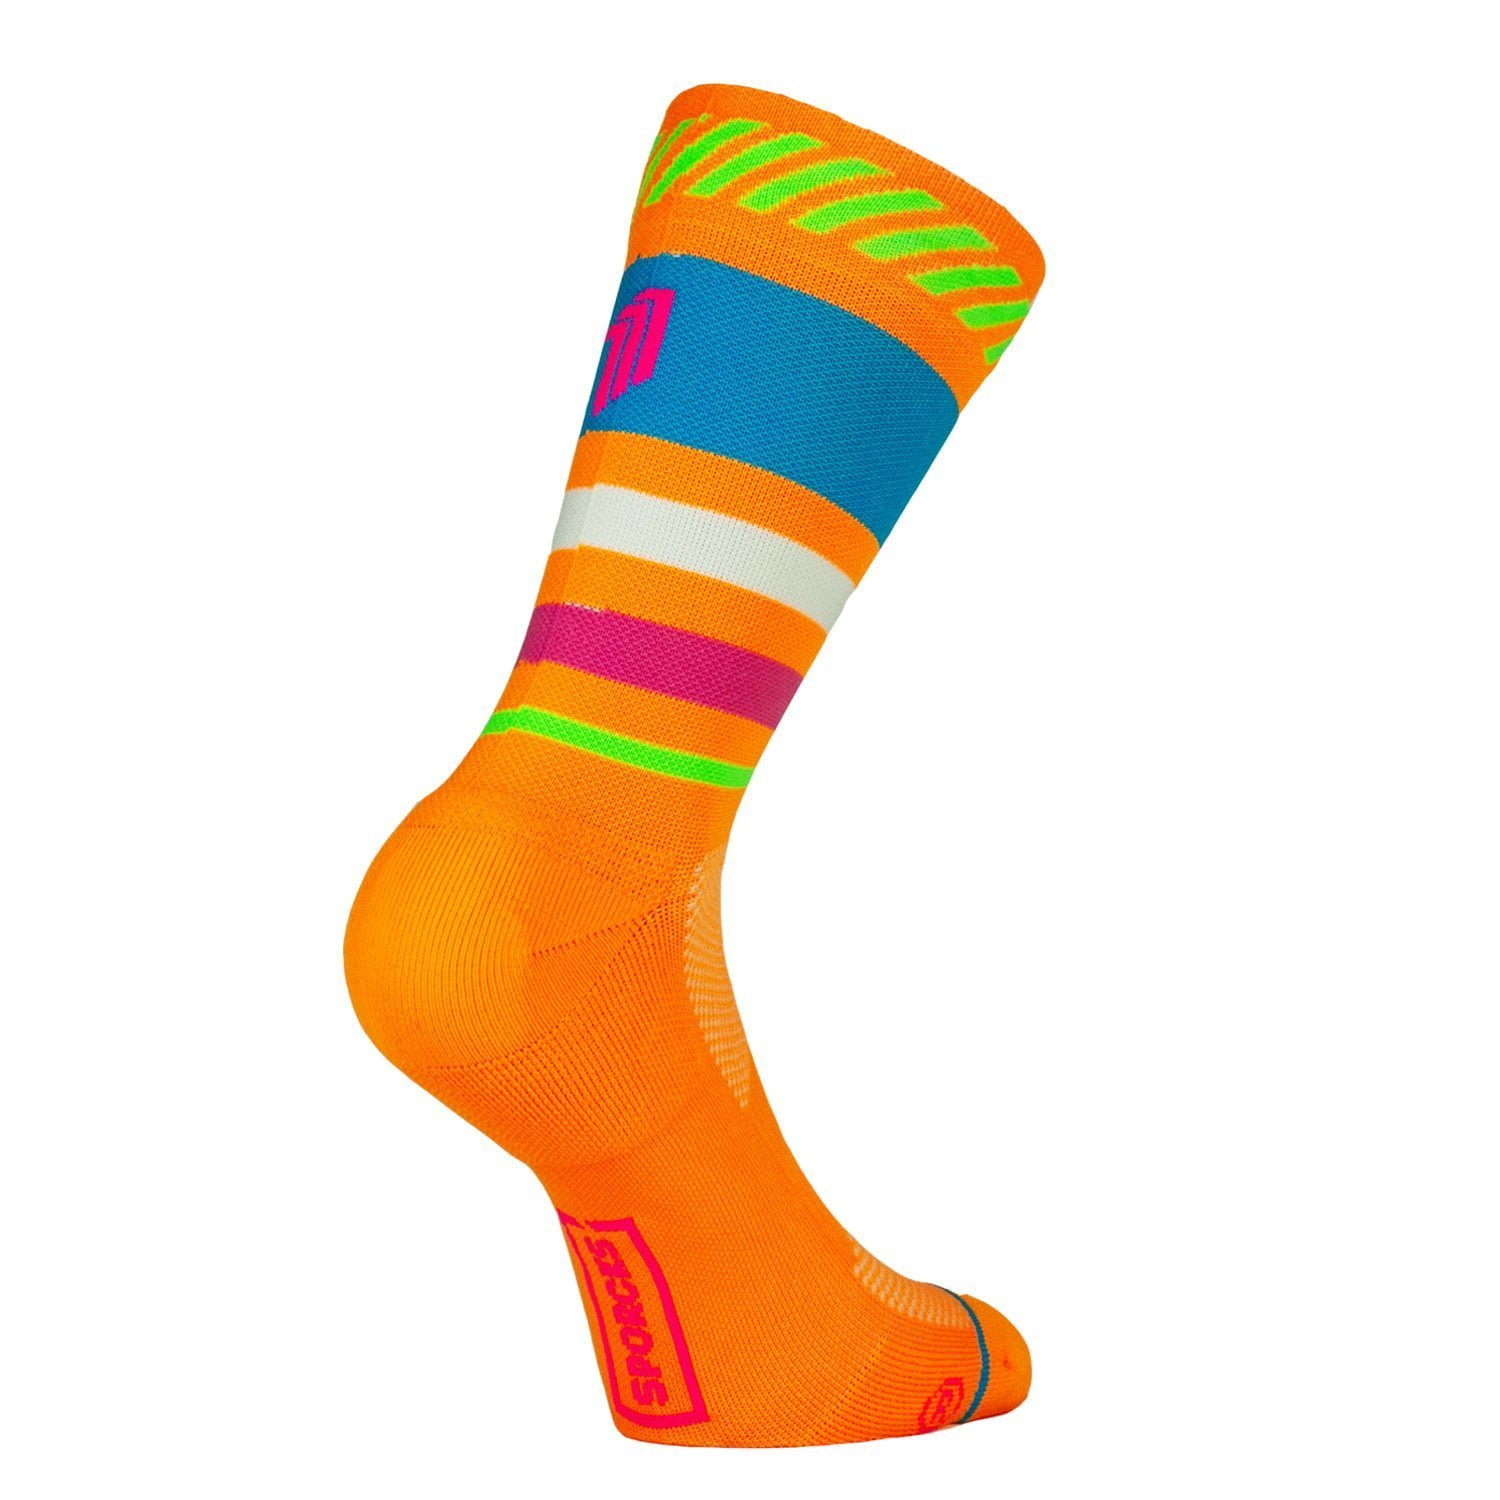 Lima Limón Orange - running socks